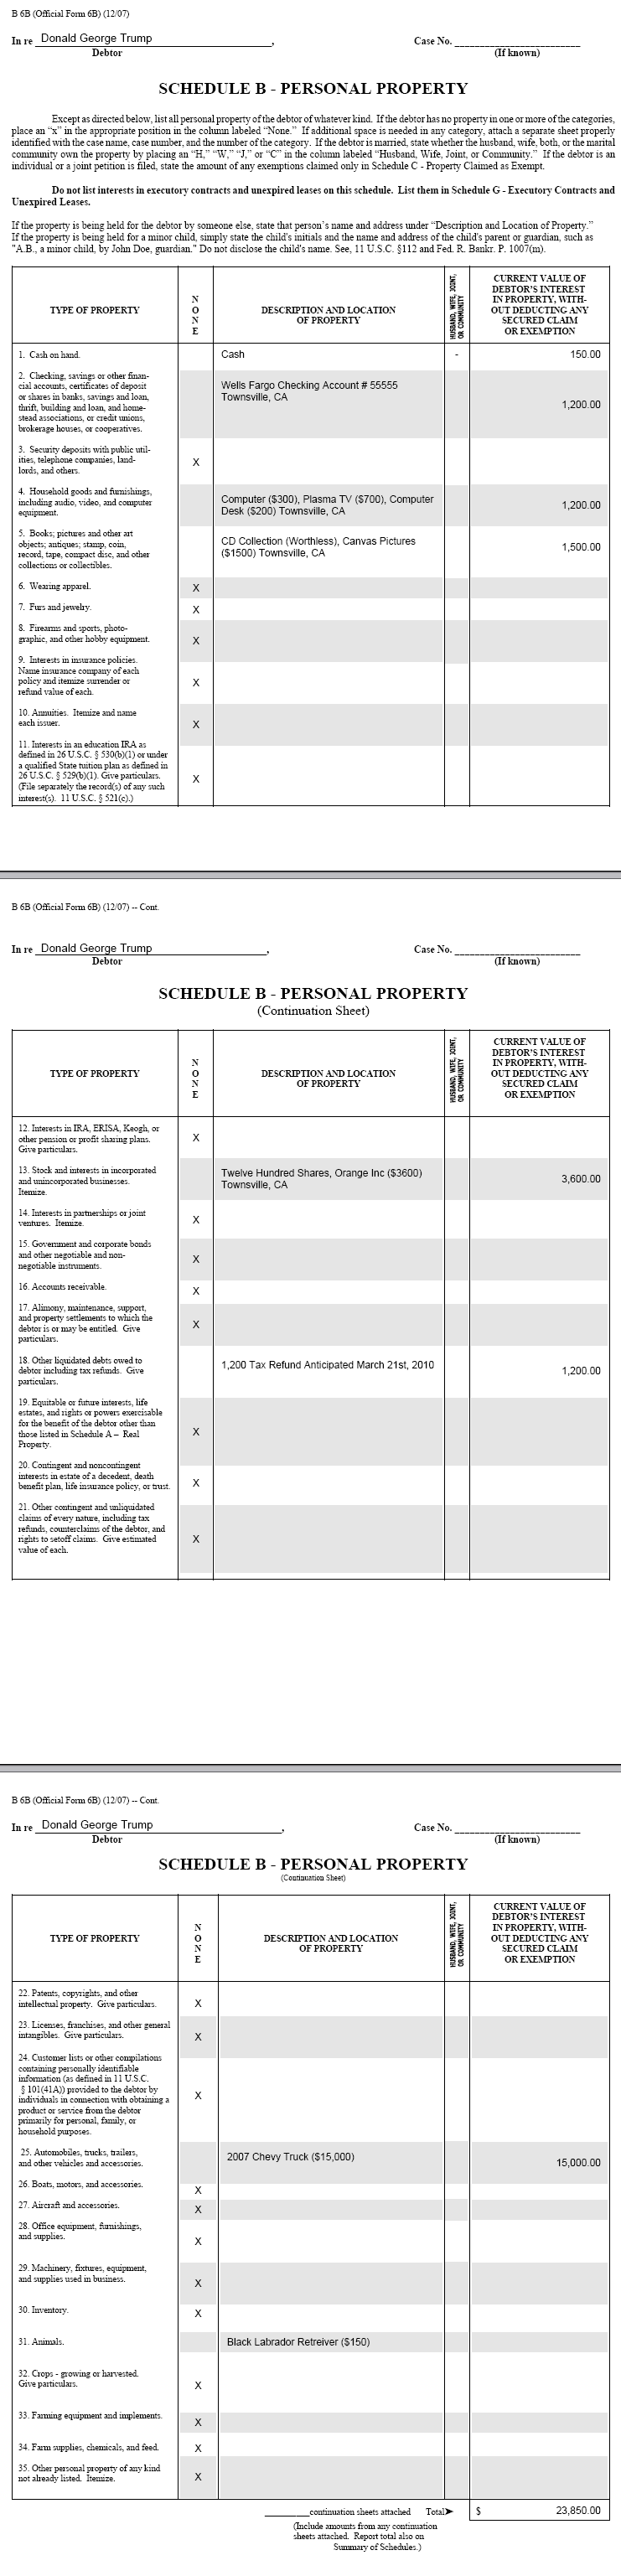 Schedule B Personal Property